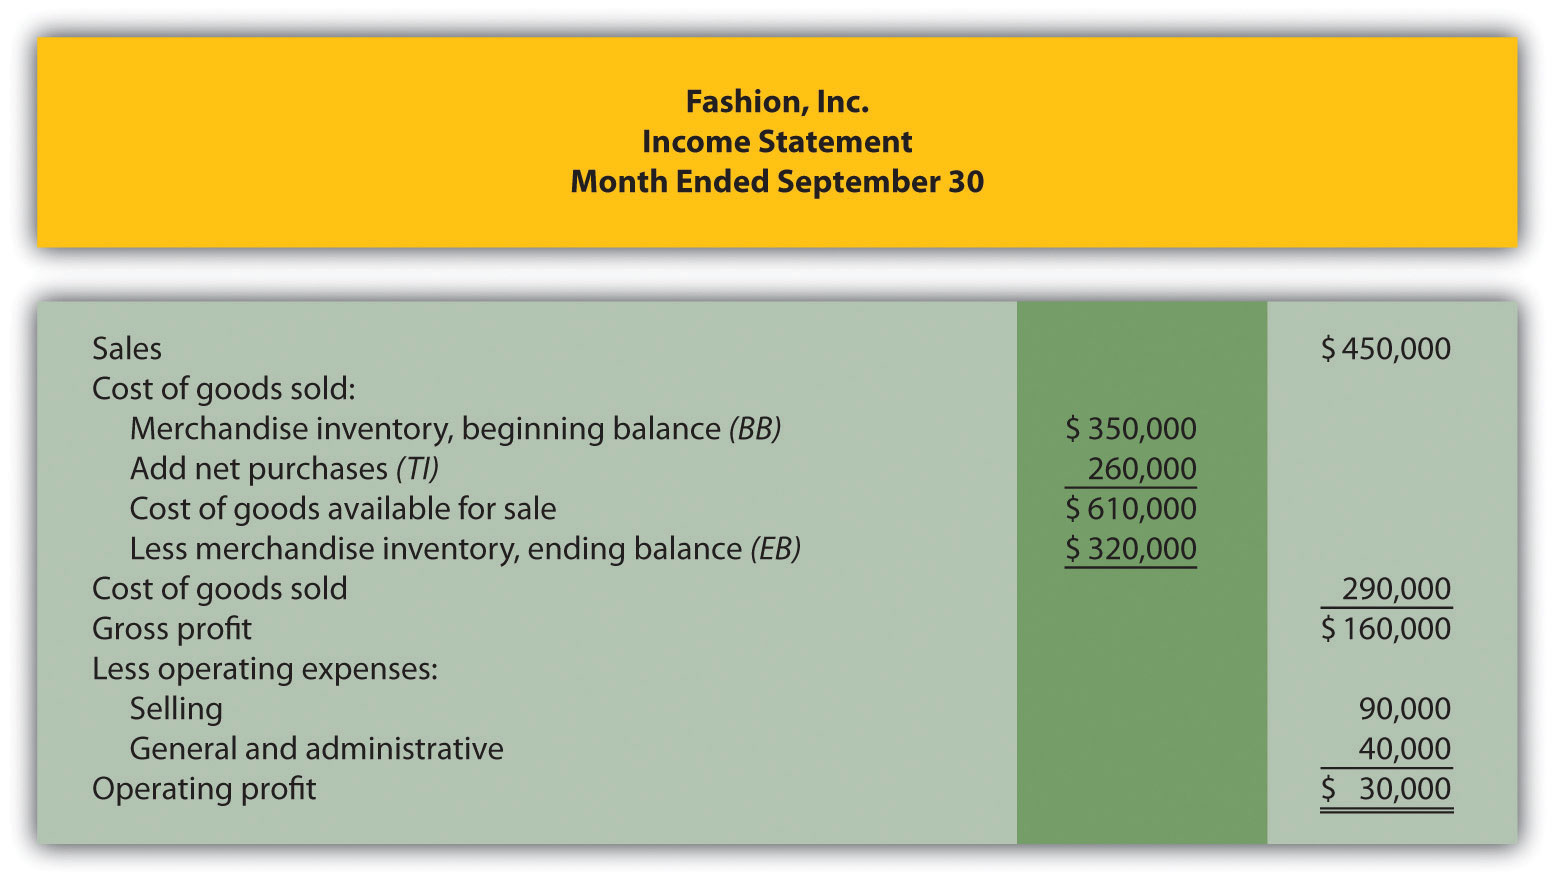 Figure 1.9 Merchandising Company Income Statement For Fashion, Inc.